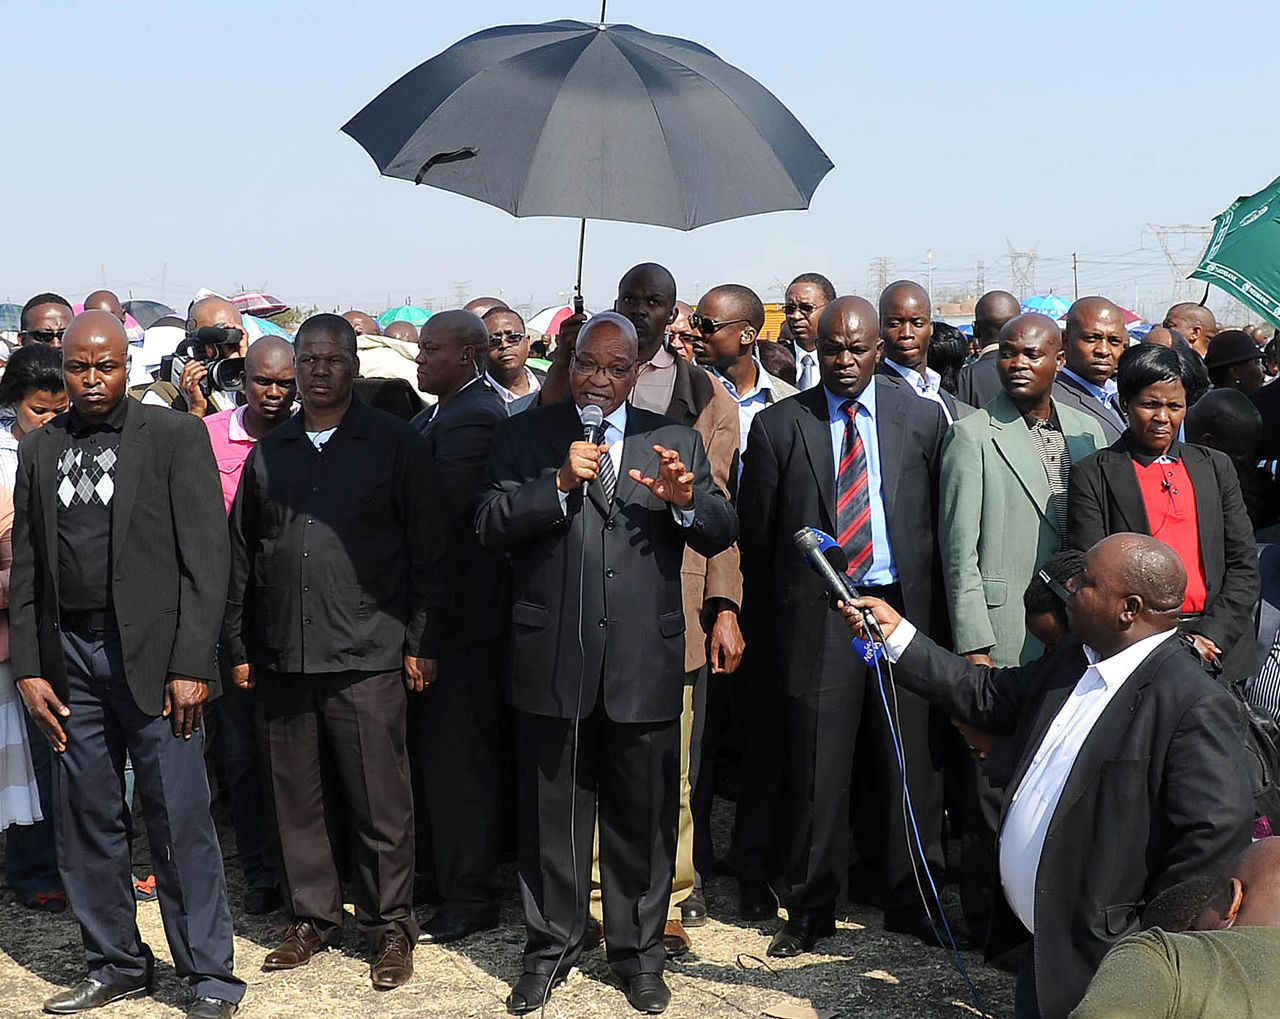 South African president Jacob Zuma (C) speaks to the striking platinum miners on August 22, 2012 at London-listed Lonmin's Marikana platinum mine, where police opened fire on hundreds of workers staging a wildcat strike on August 16, that left 44 dead. The 44 deaths at Lonmin's Marikana mine last week have forced South Africa to confront a culture of violence that runs from the country's gruesome crimes to the language of its politics, experts said. AFP PHOTO / STR